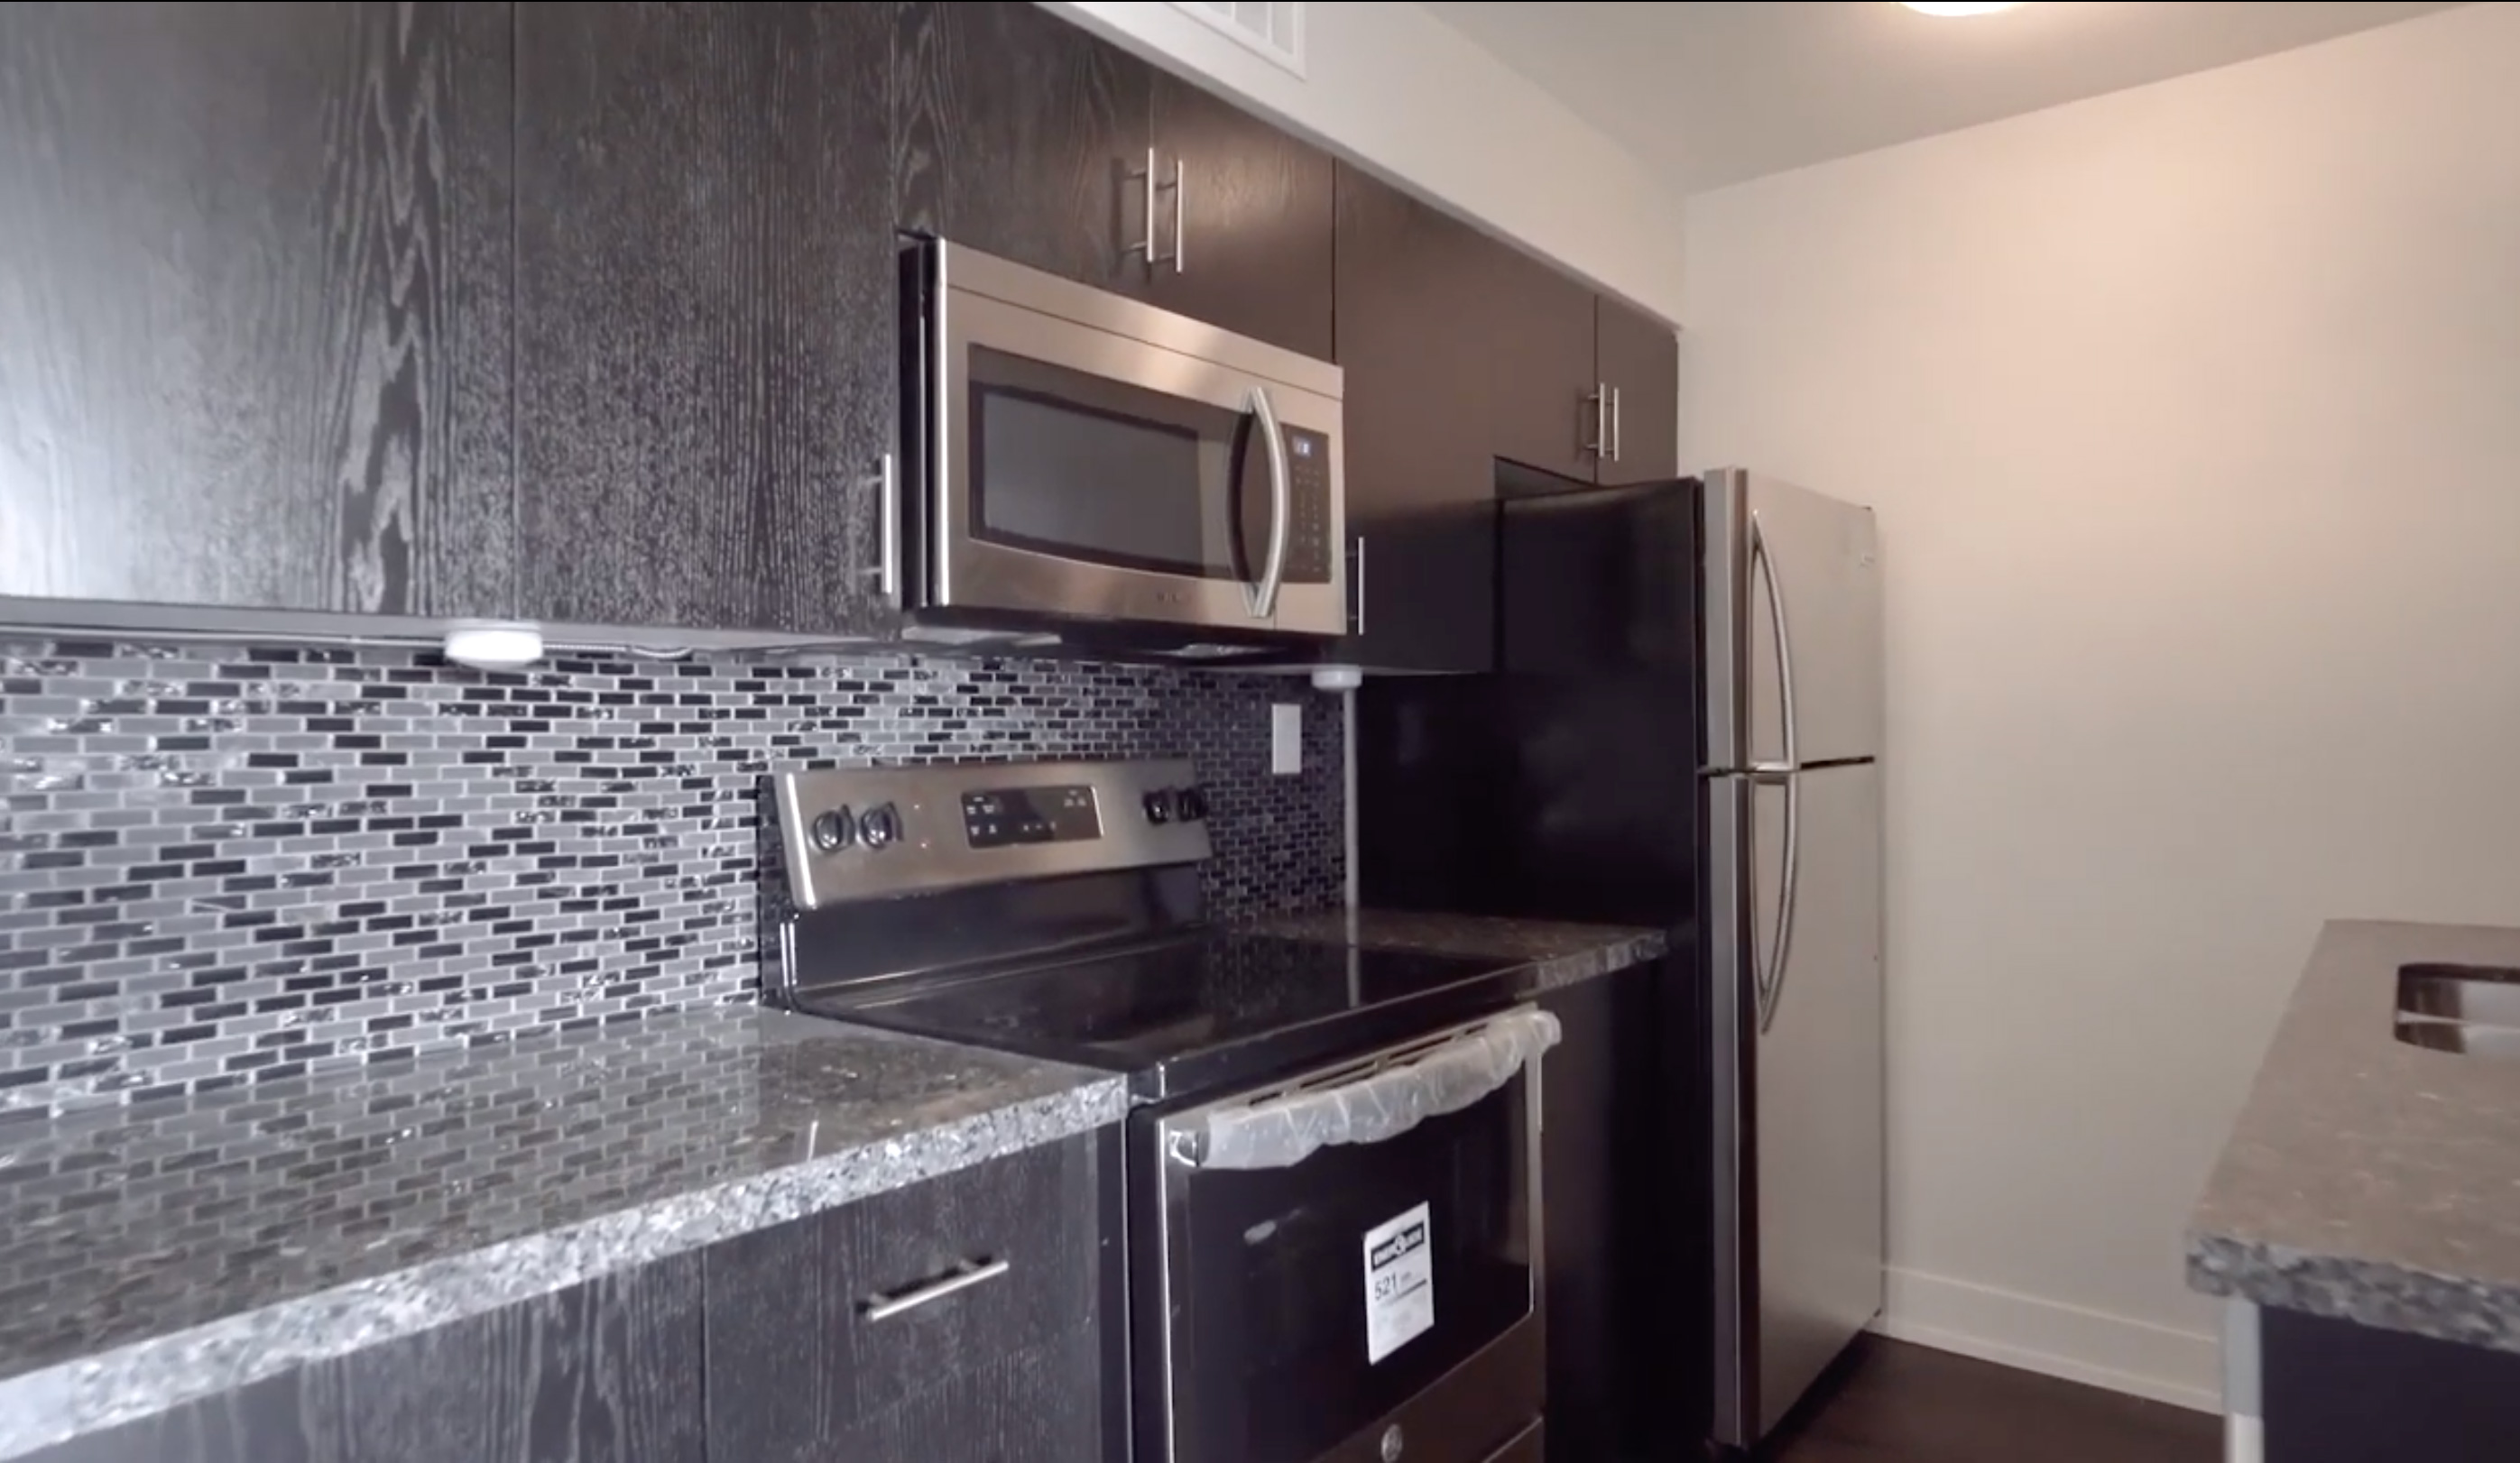 1 bedroom unit #605 – $1,275.00 June 1st, 2021 (luxuriously renovated)